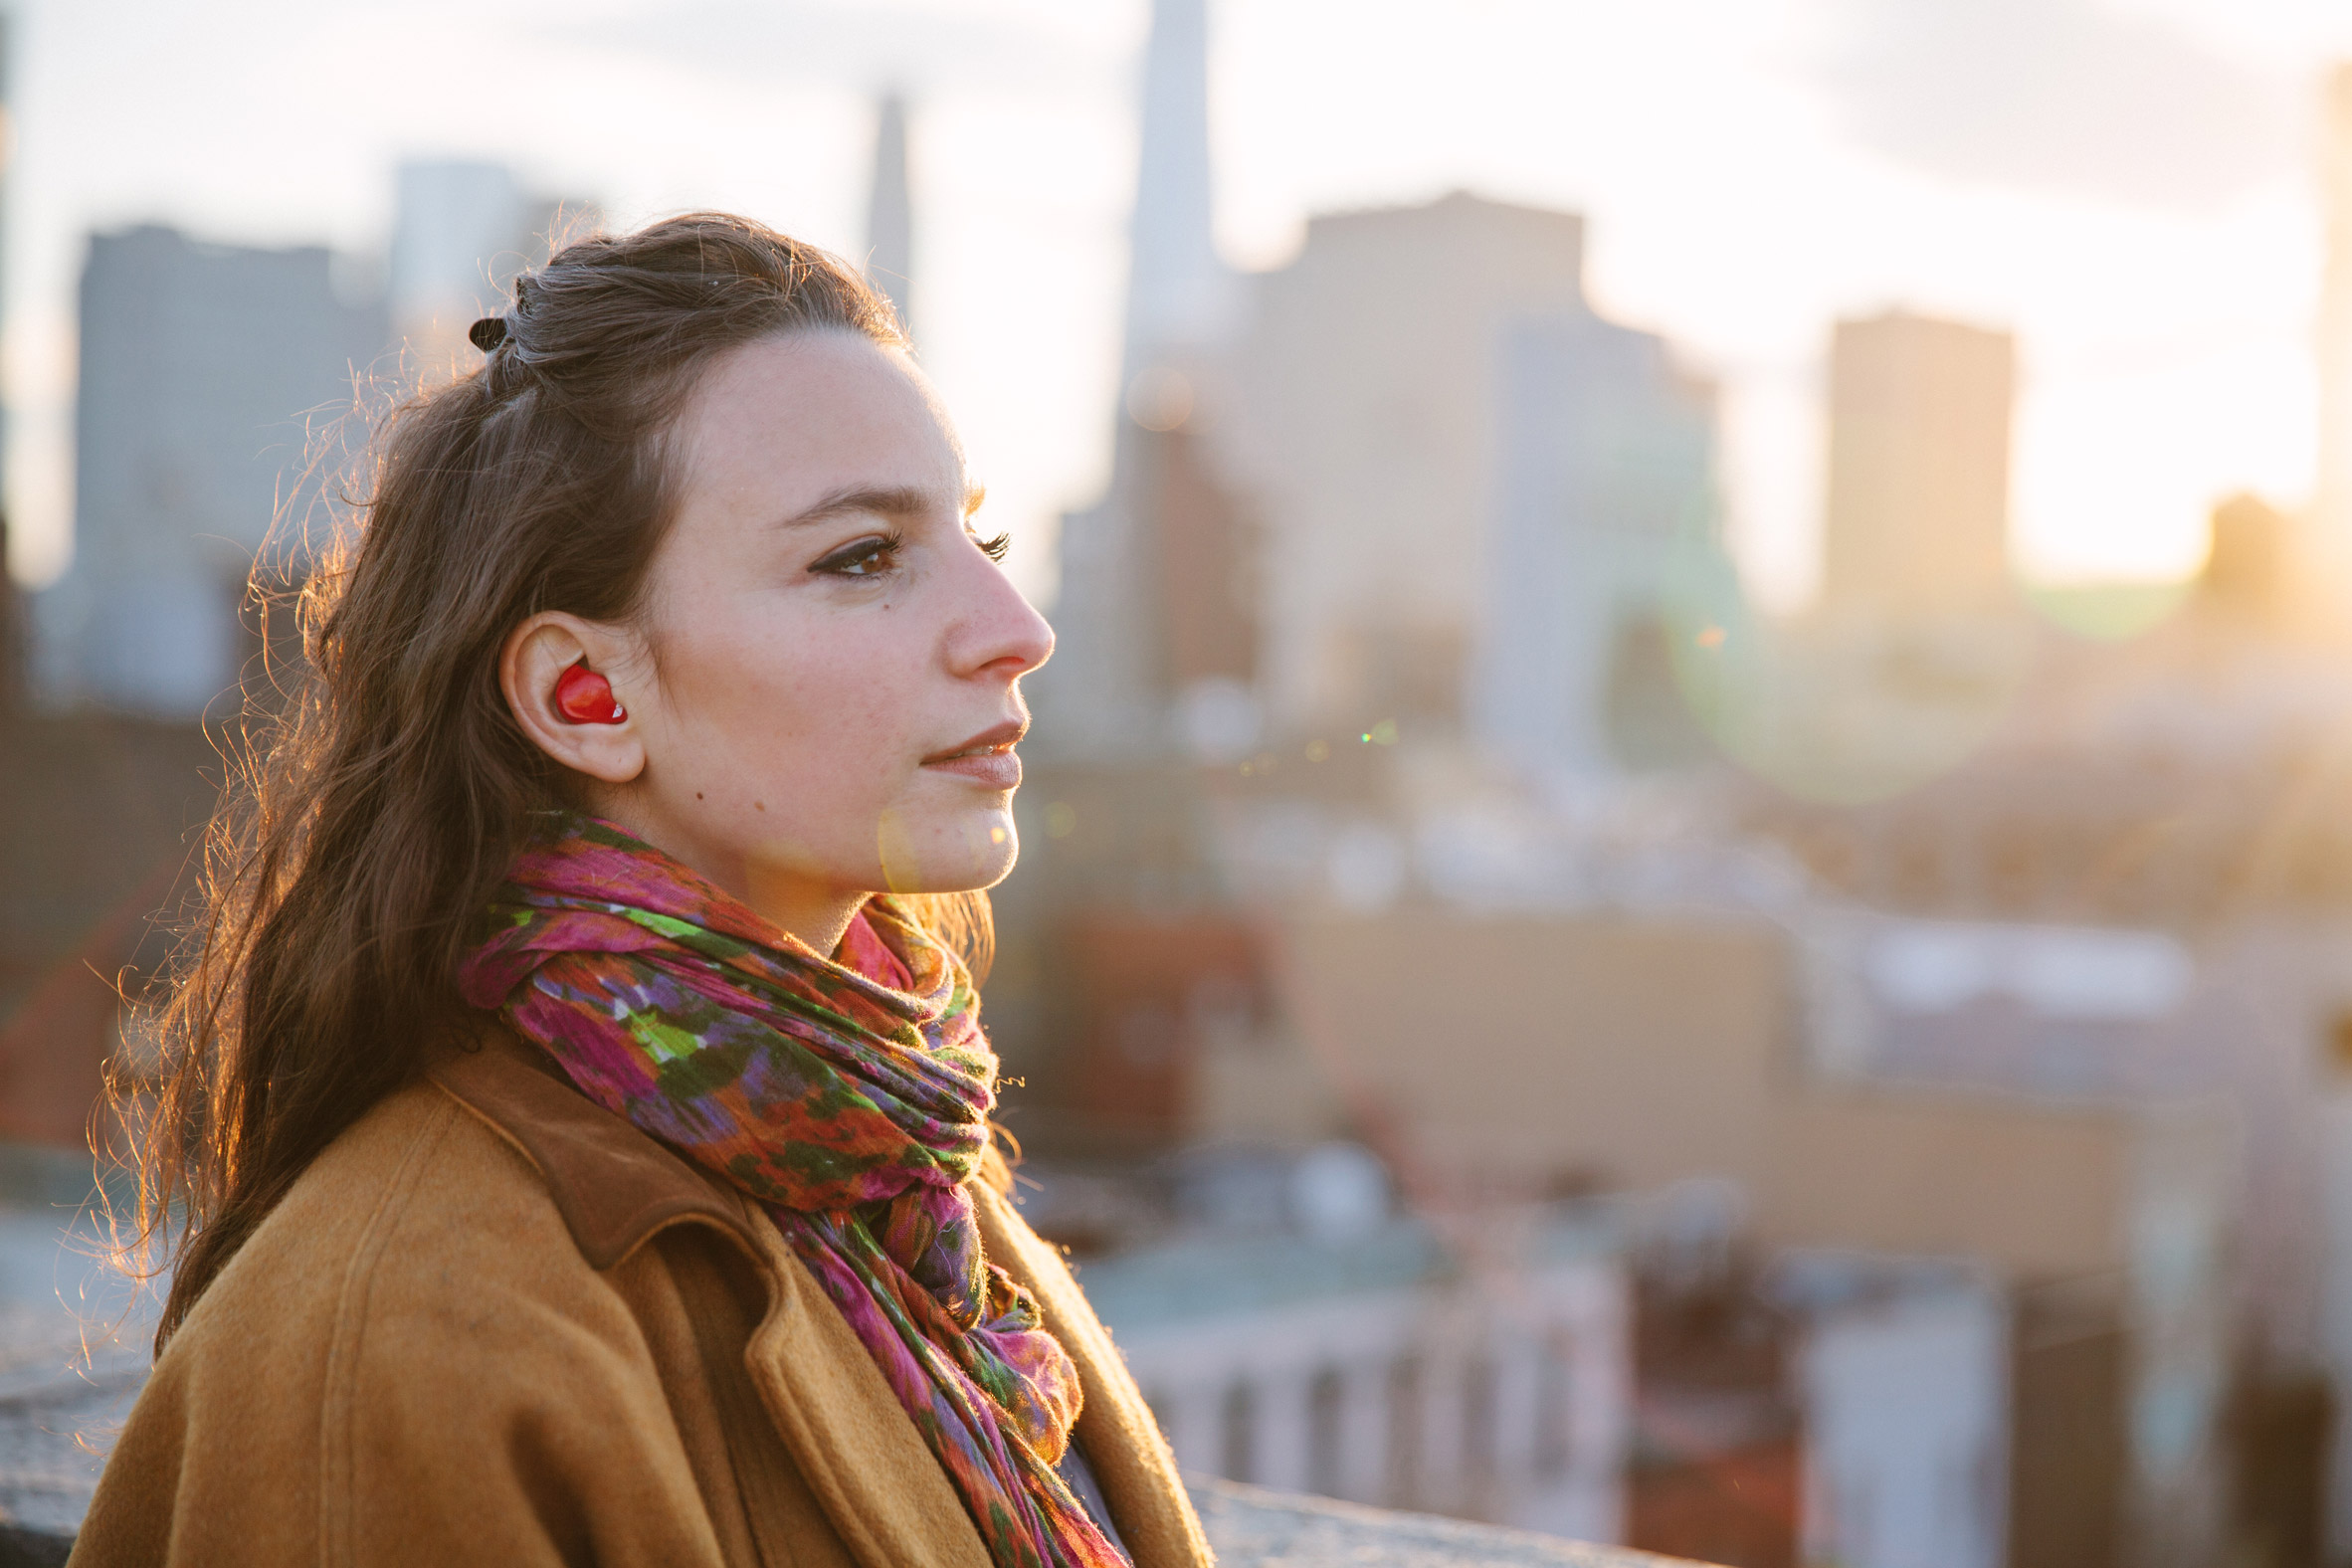 Waverly Labs' Pilot earpiece promises to translate languages in real time